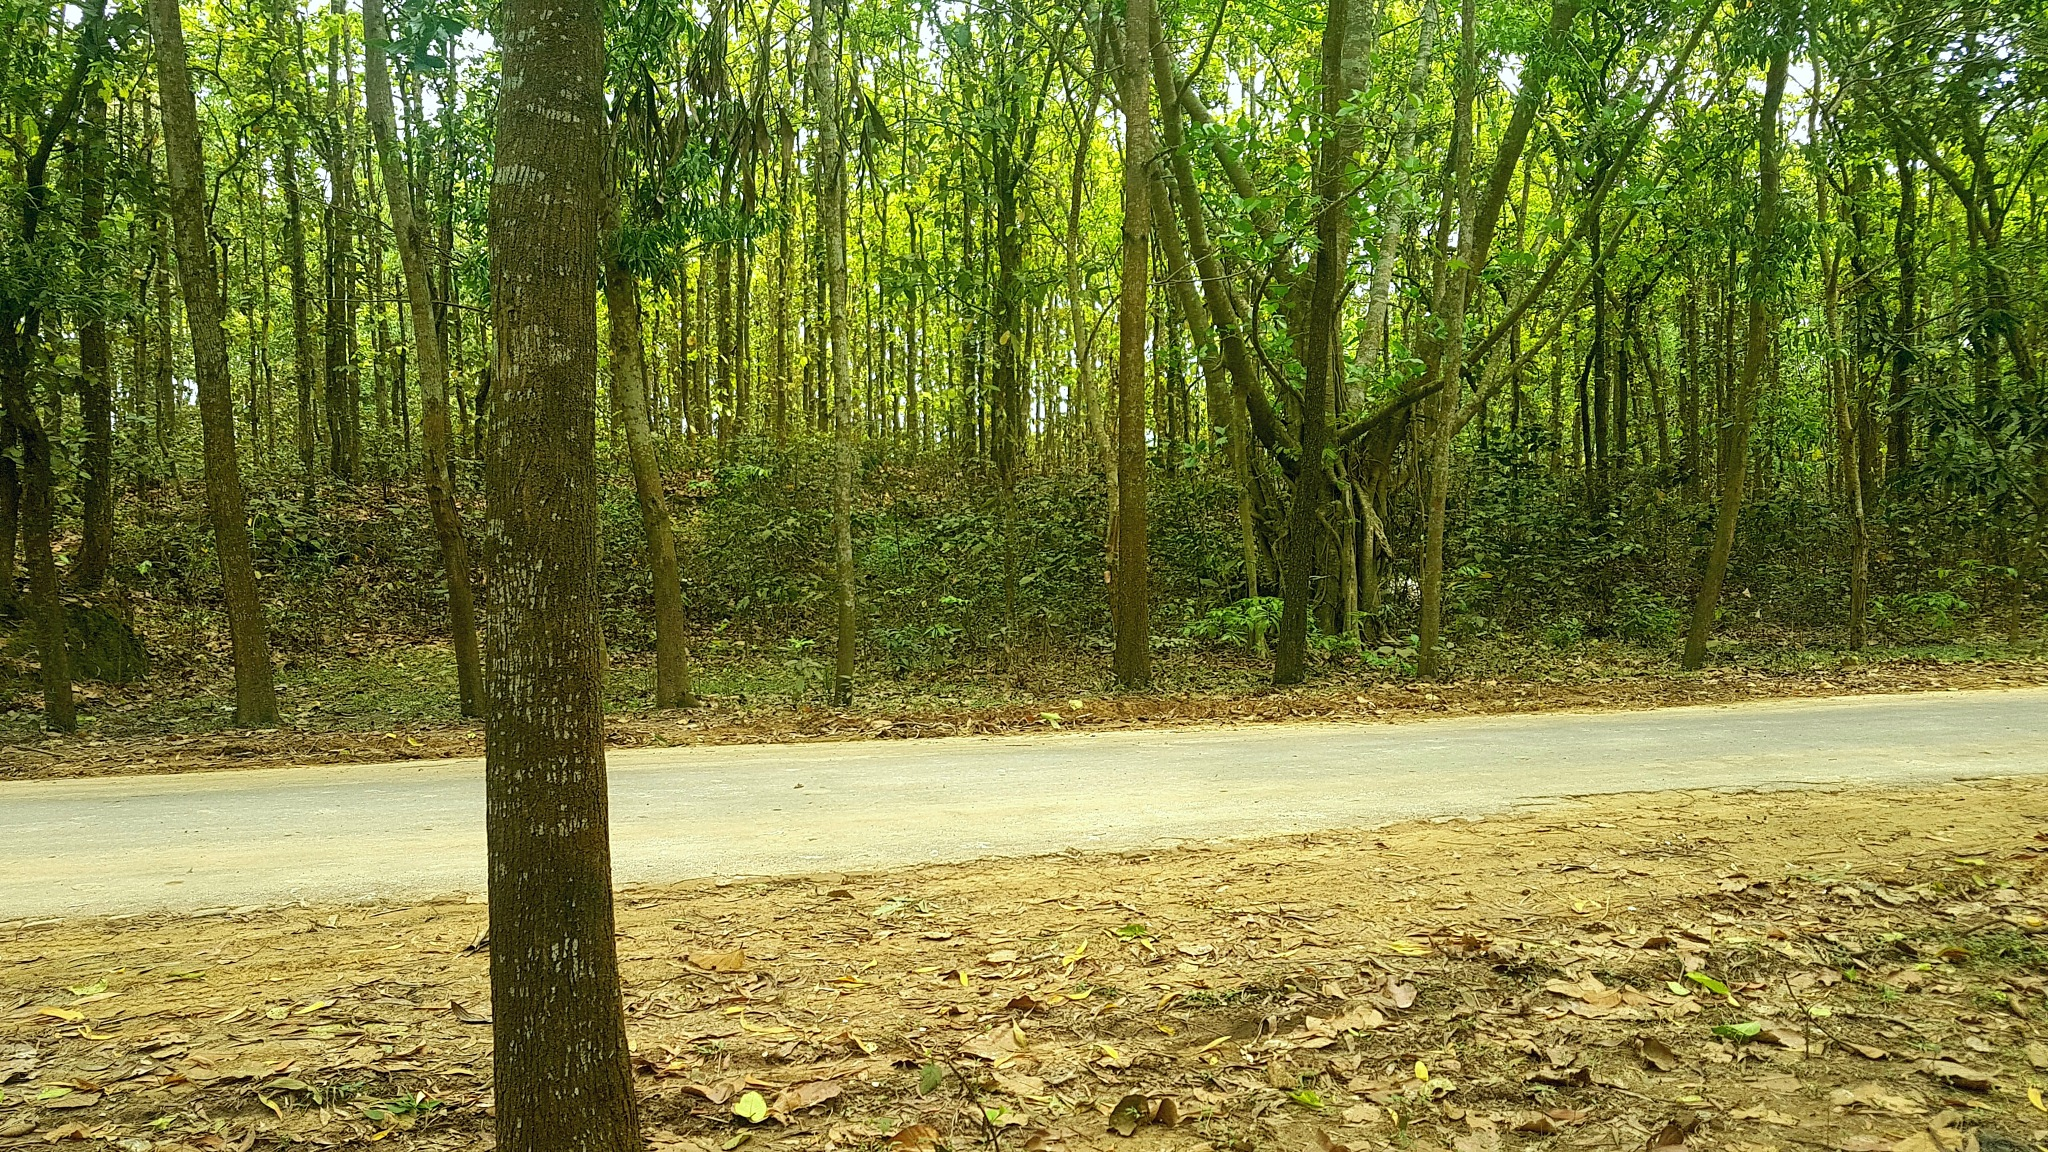 Bhaowal Jungle by Md Golam Murshed